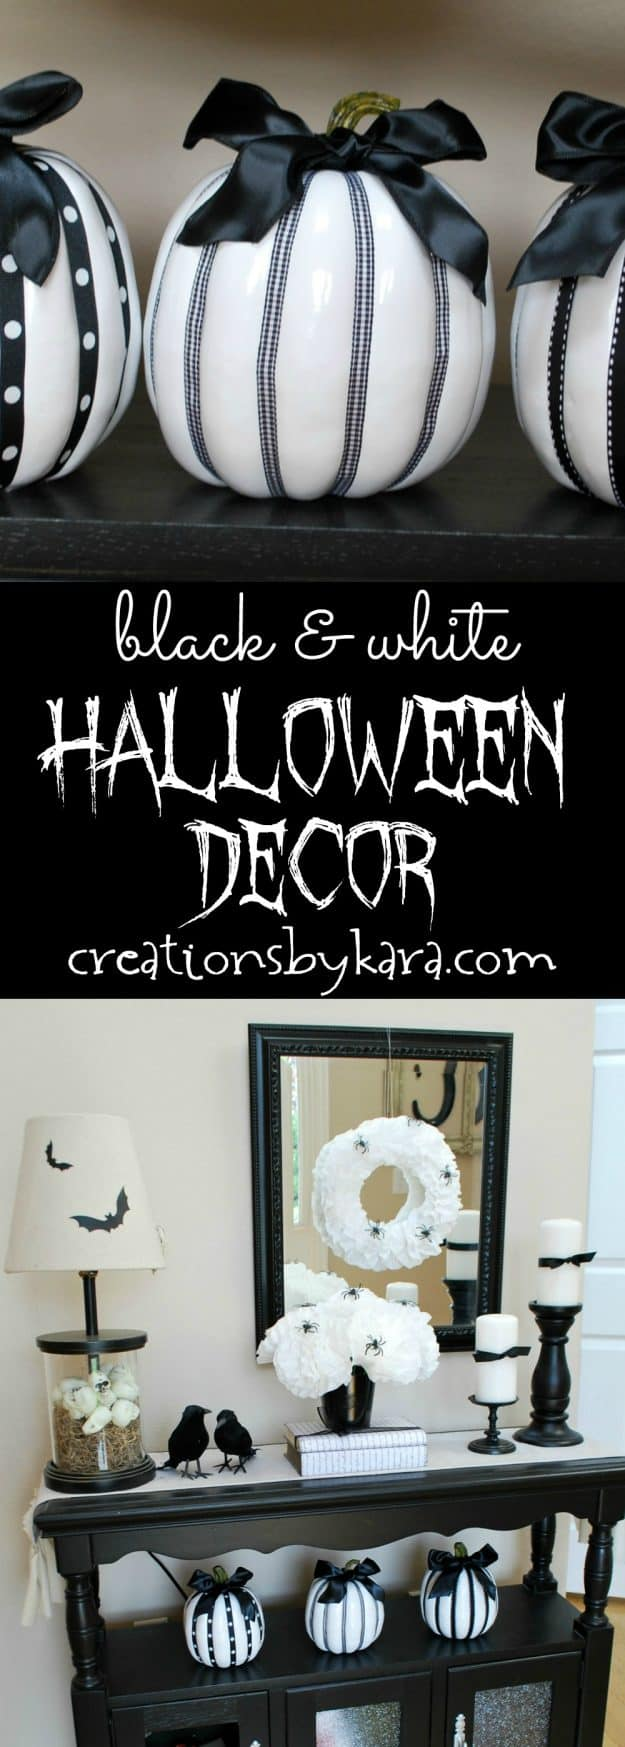 Black and White Halloween Decor Ideas